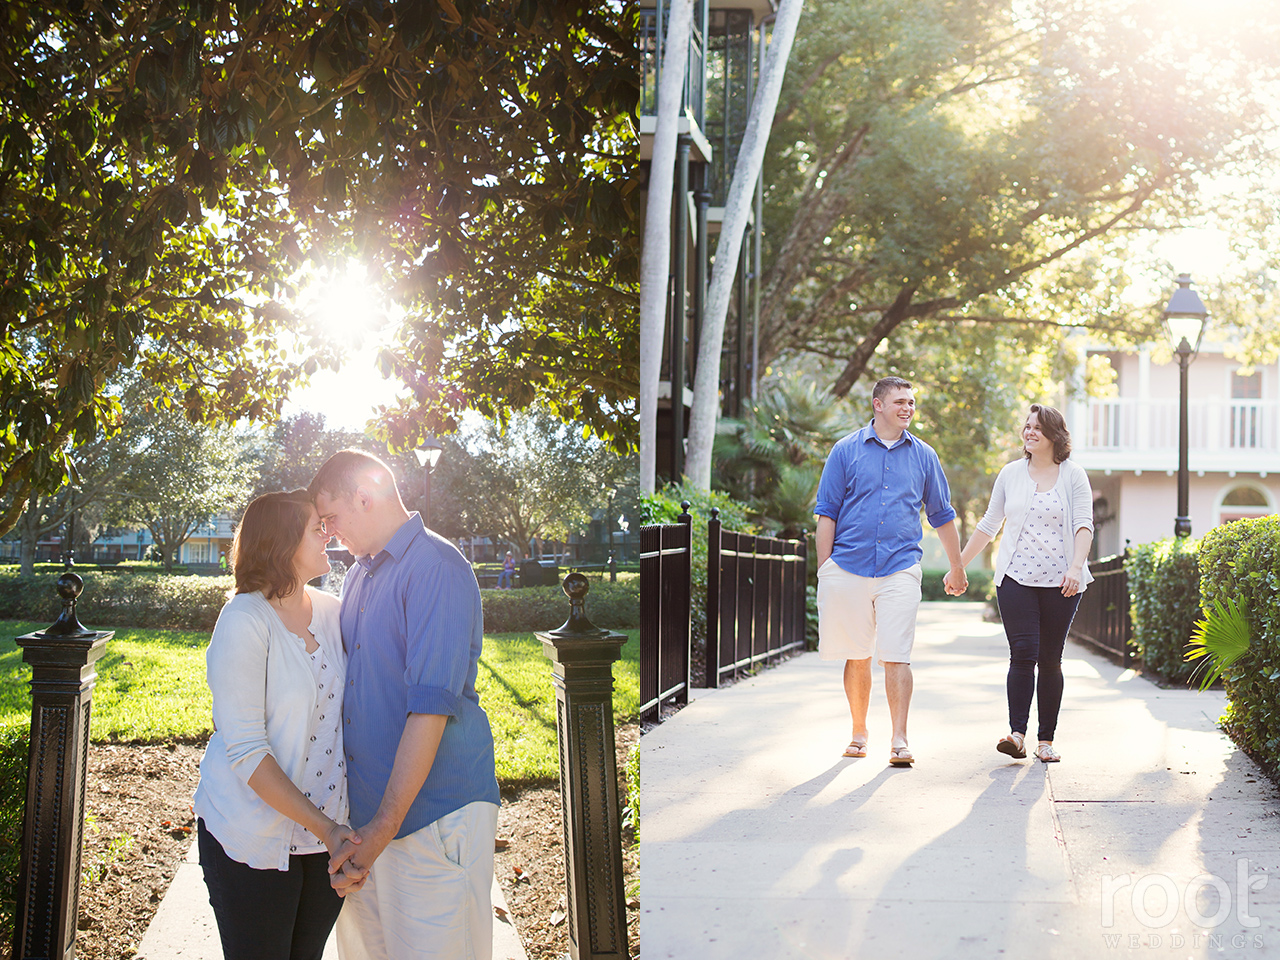 Orlando Engagement Session Photographer 26